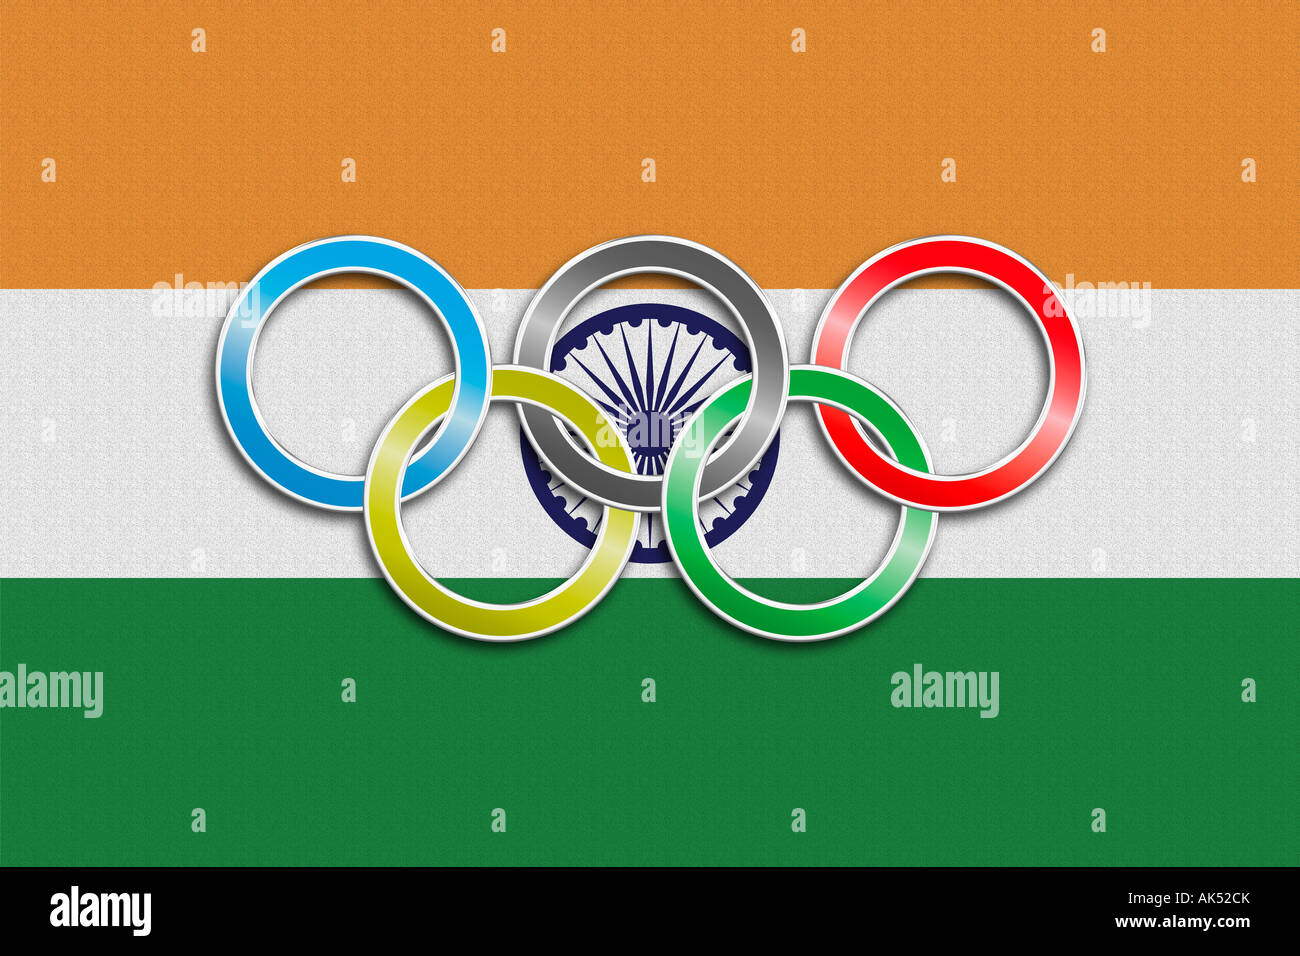 Flag Of India With Olympic Symbol Stock Photo 14887410 Alamy